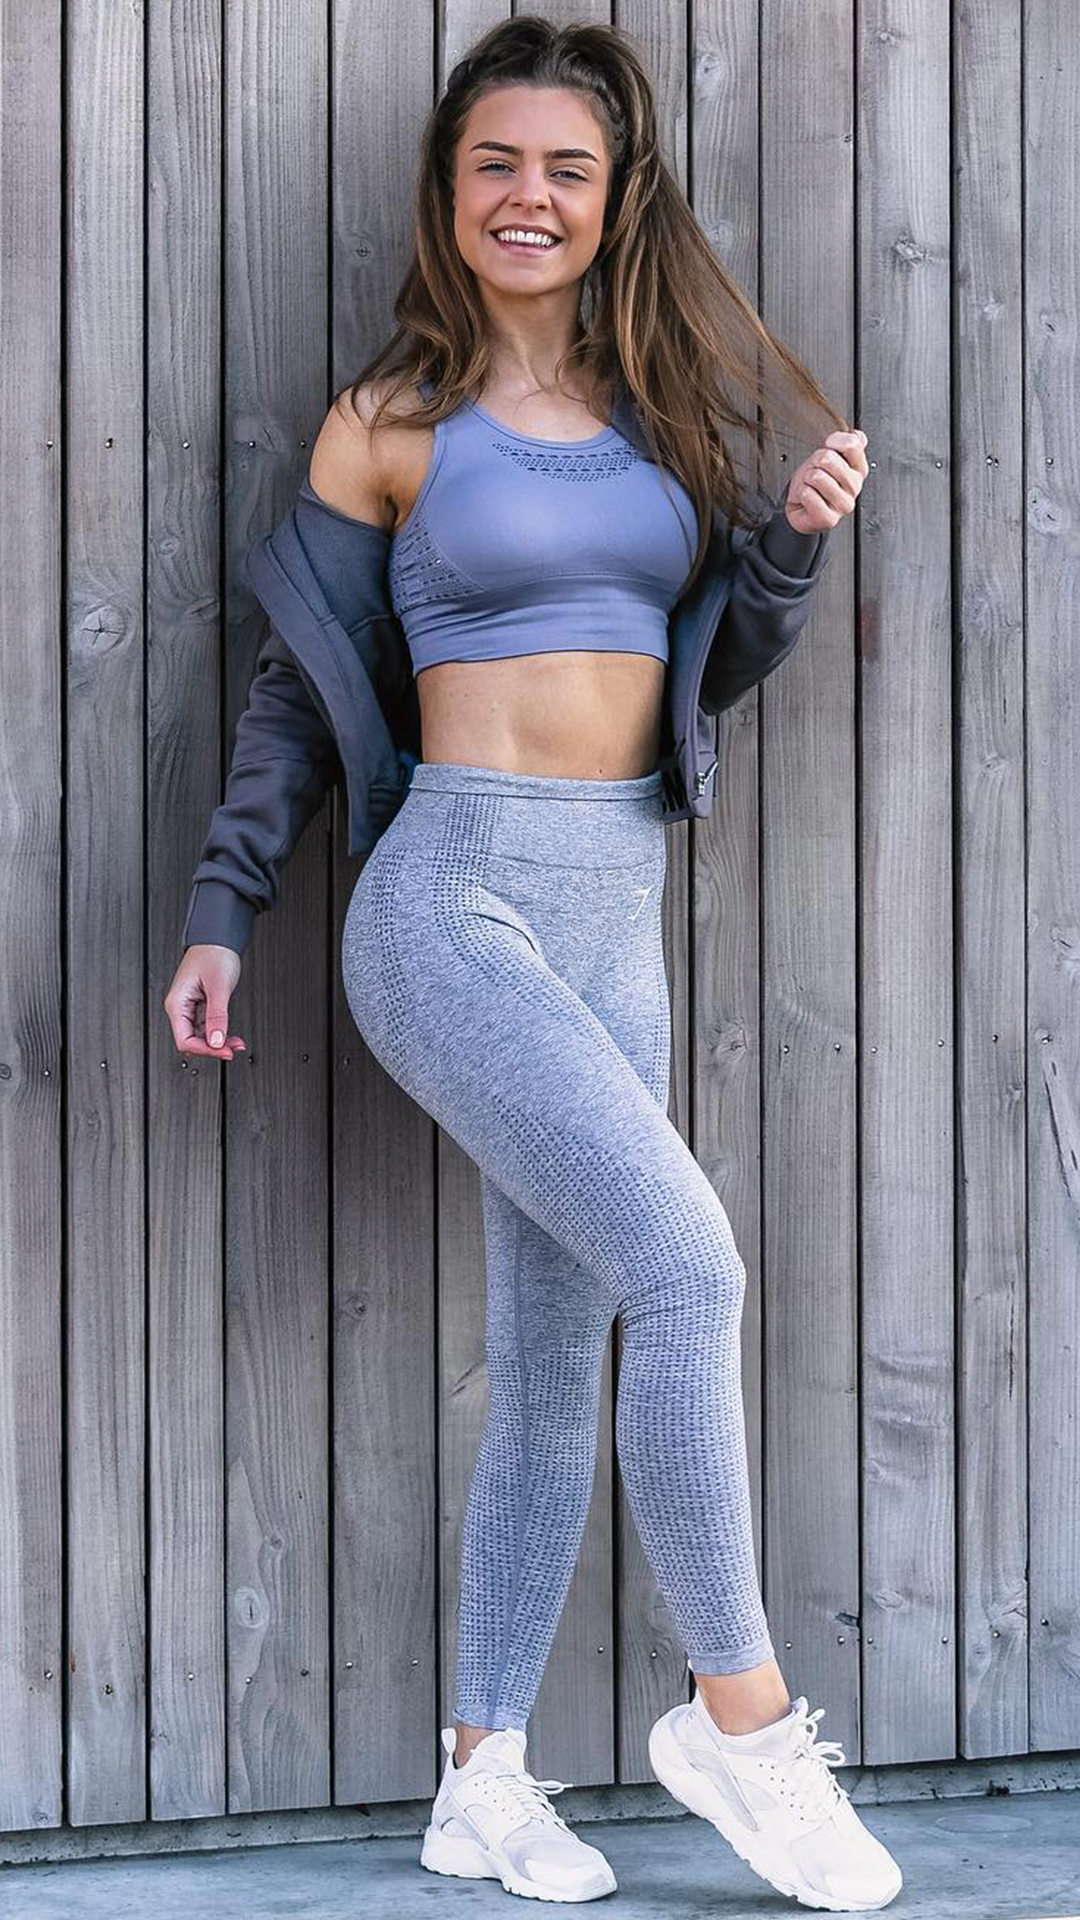 cdd554895c61bb Babe in blue, Sophie wears the Steel Blue Vital Seamless Leggings and  Energy+ Seamless Sports